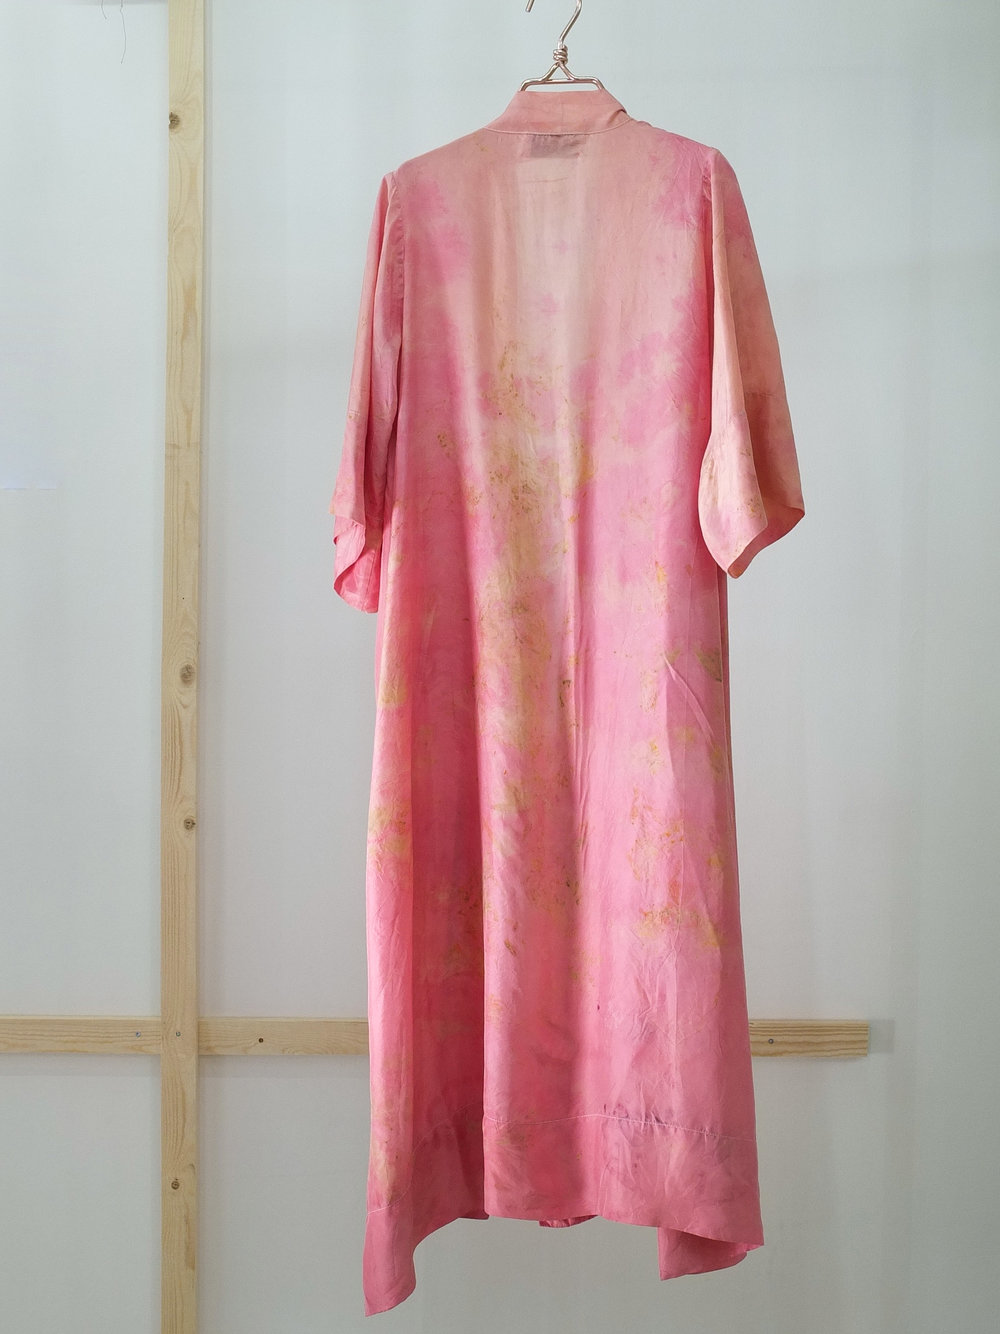 SILK ROBE · No. 14 OF 33 · SIZE MEDIUM